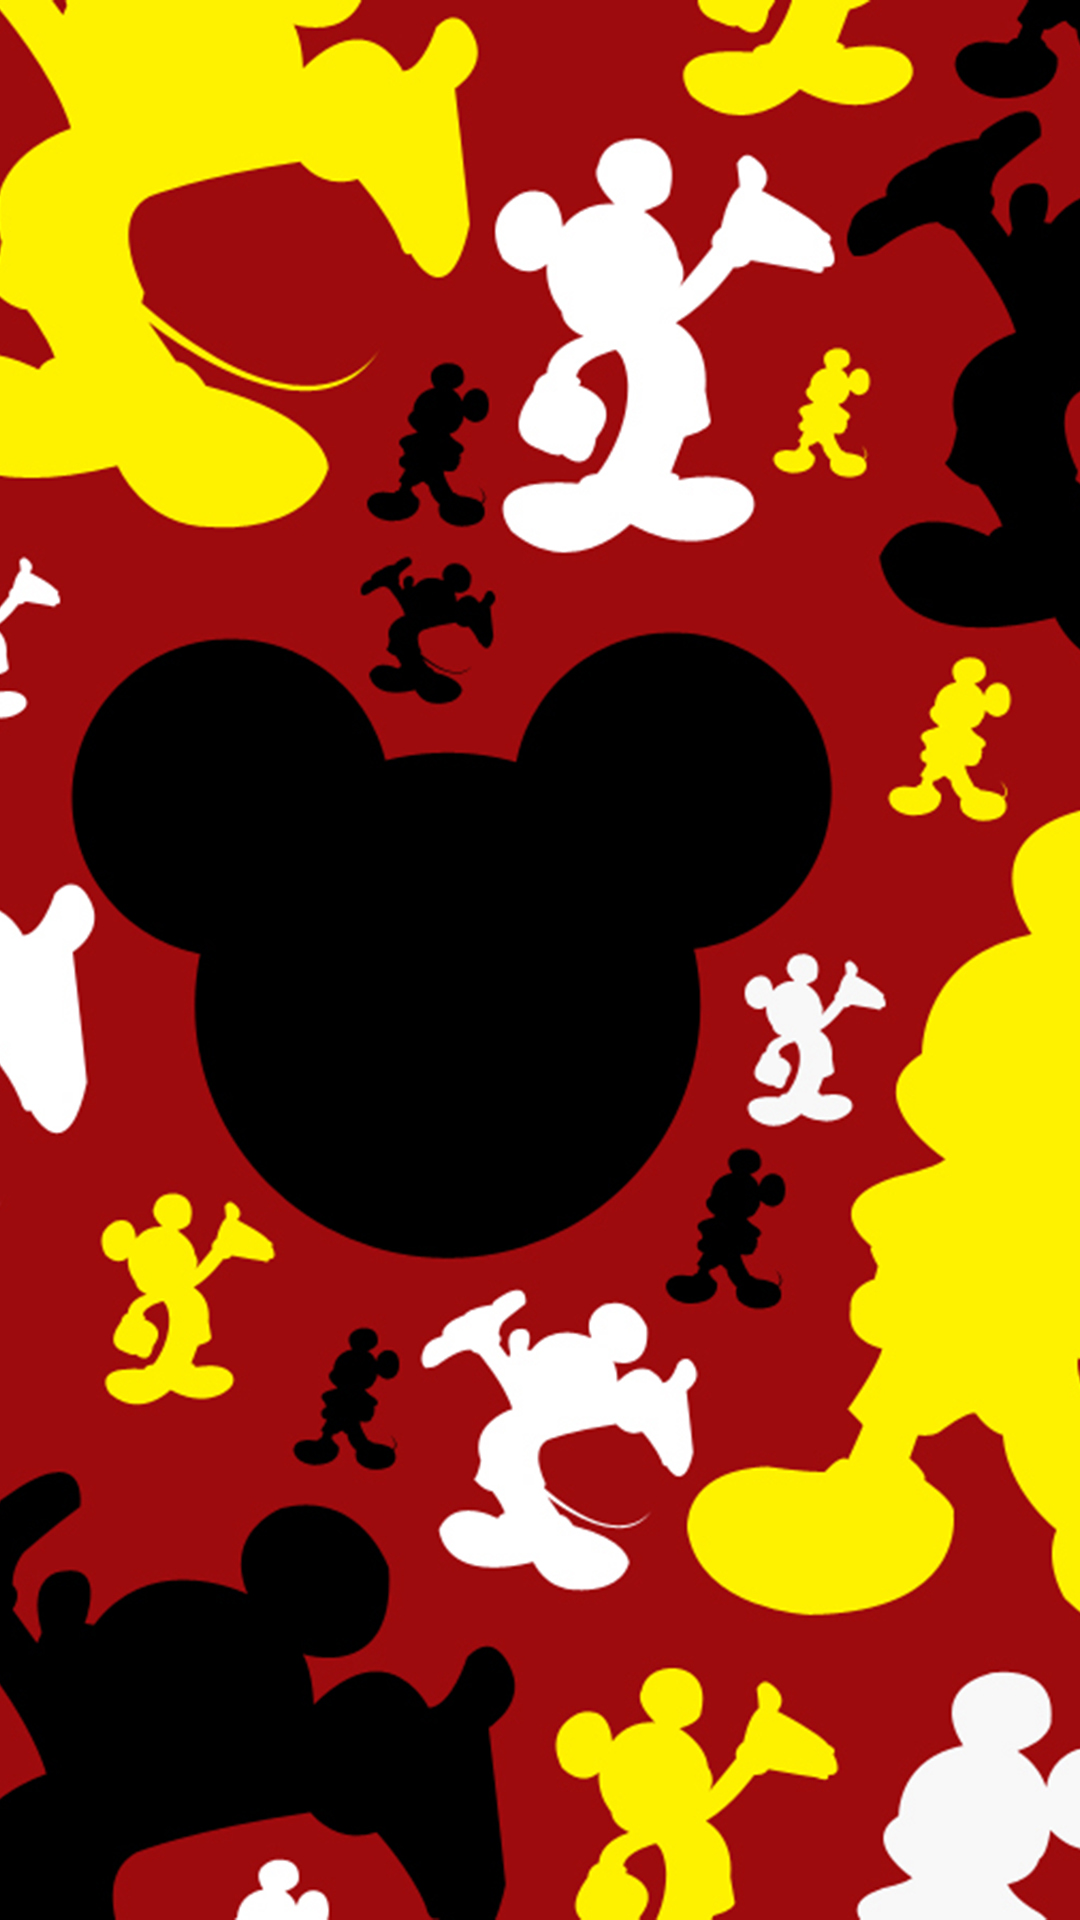 Mickey Mouse Apple Iphone Hd Wallpaper Pictures to pin on Pinterest